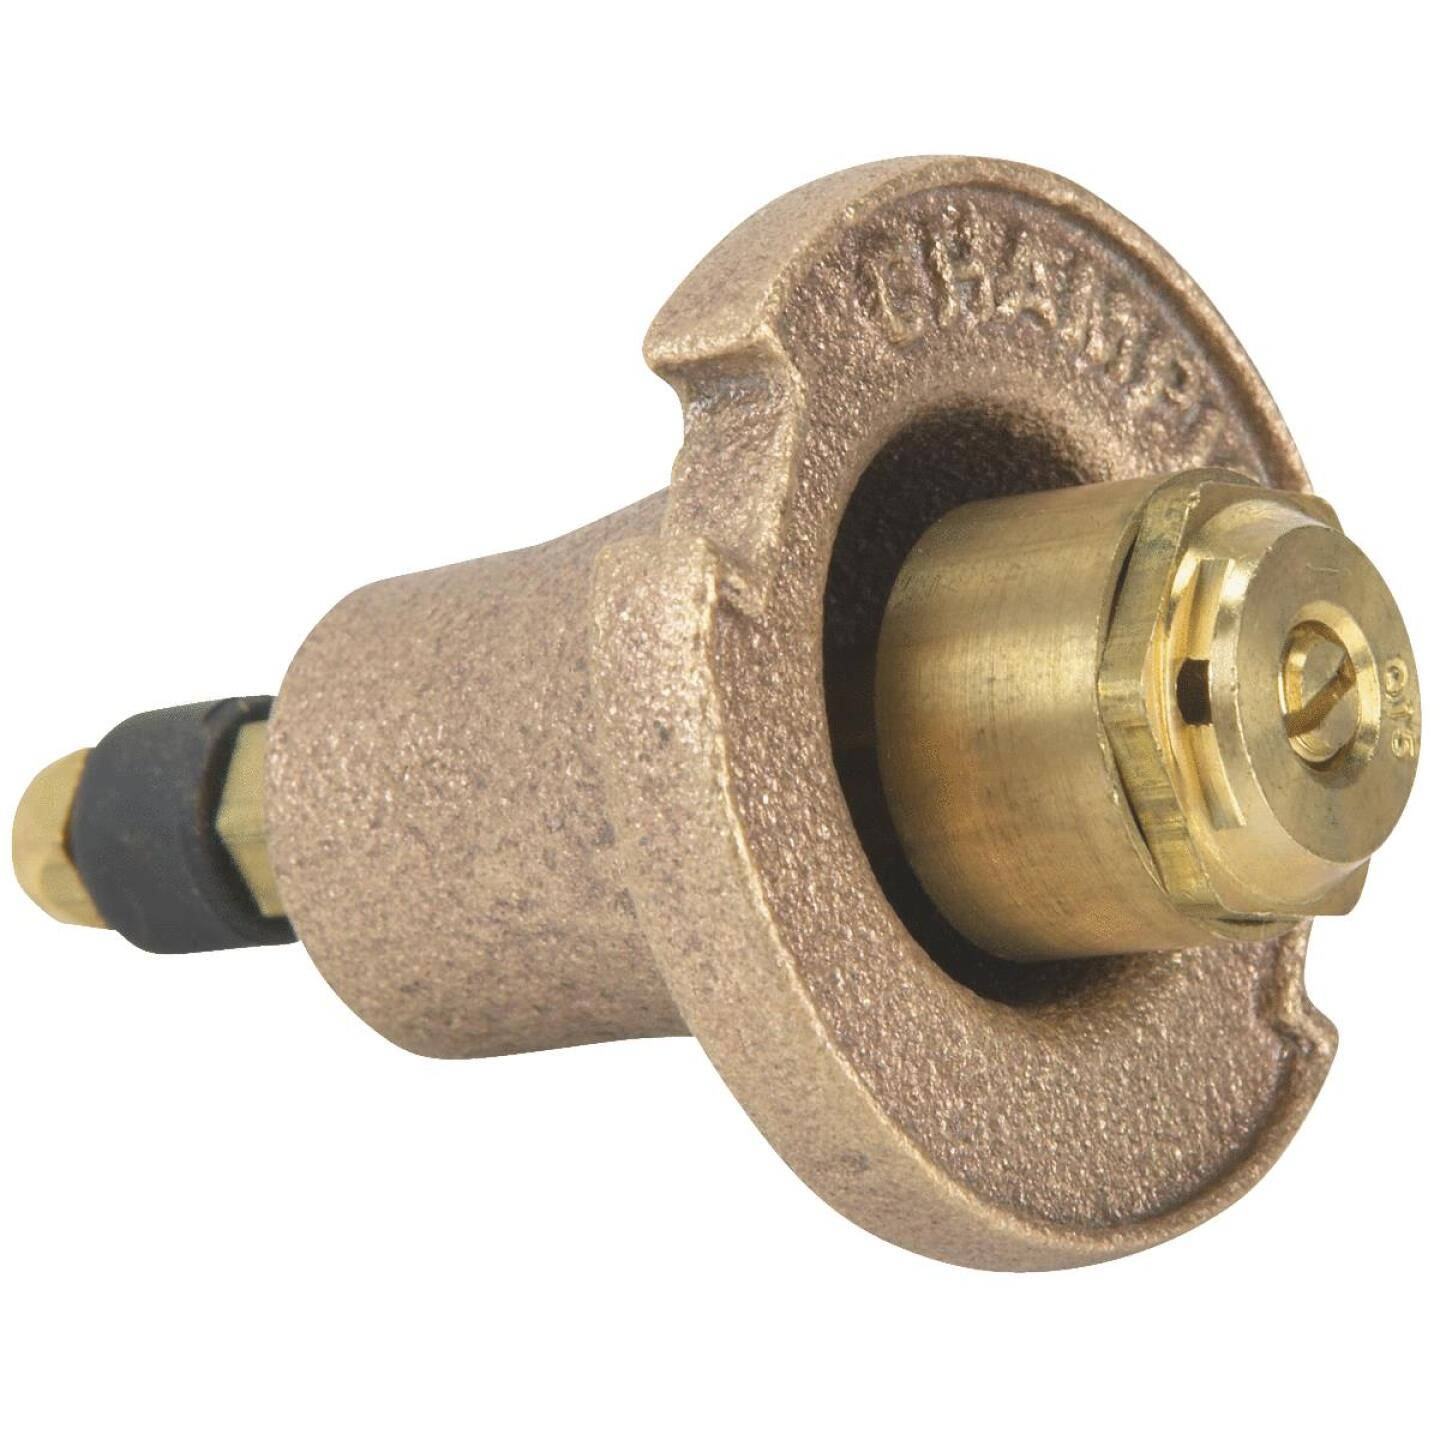 Champion 1.25 In. Quarter Circle Brass Pop-Up Sprinkler with Brass Nozzle Image 1